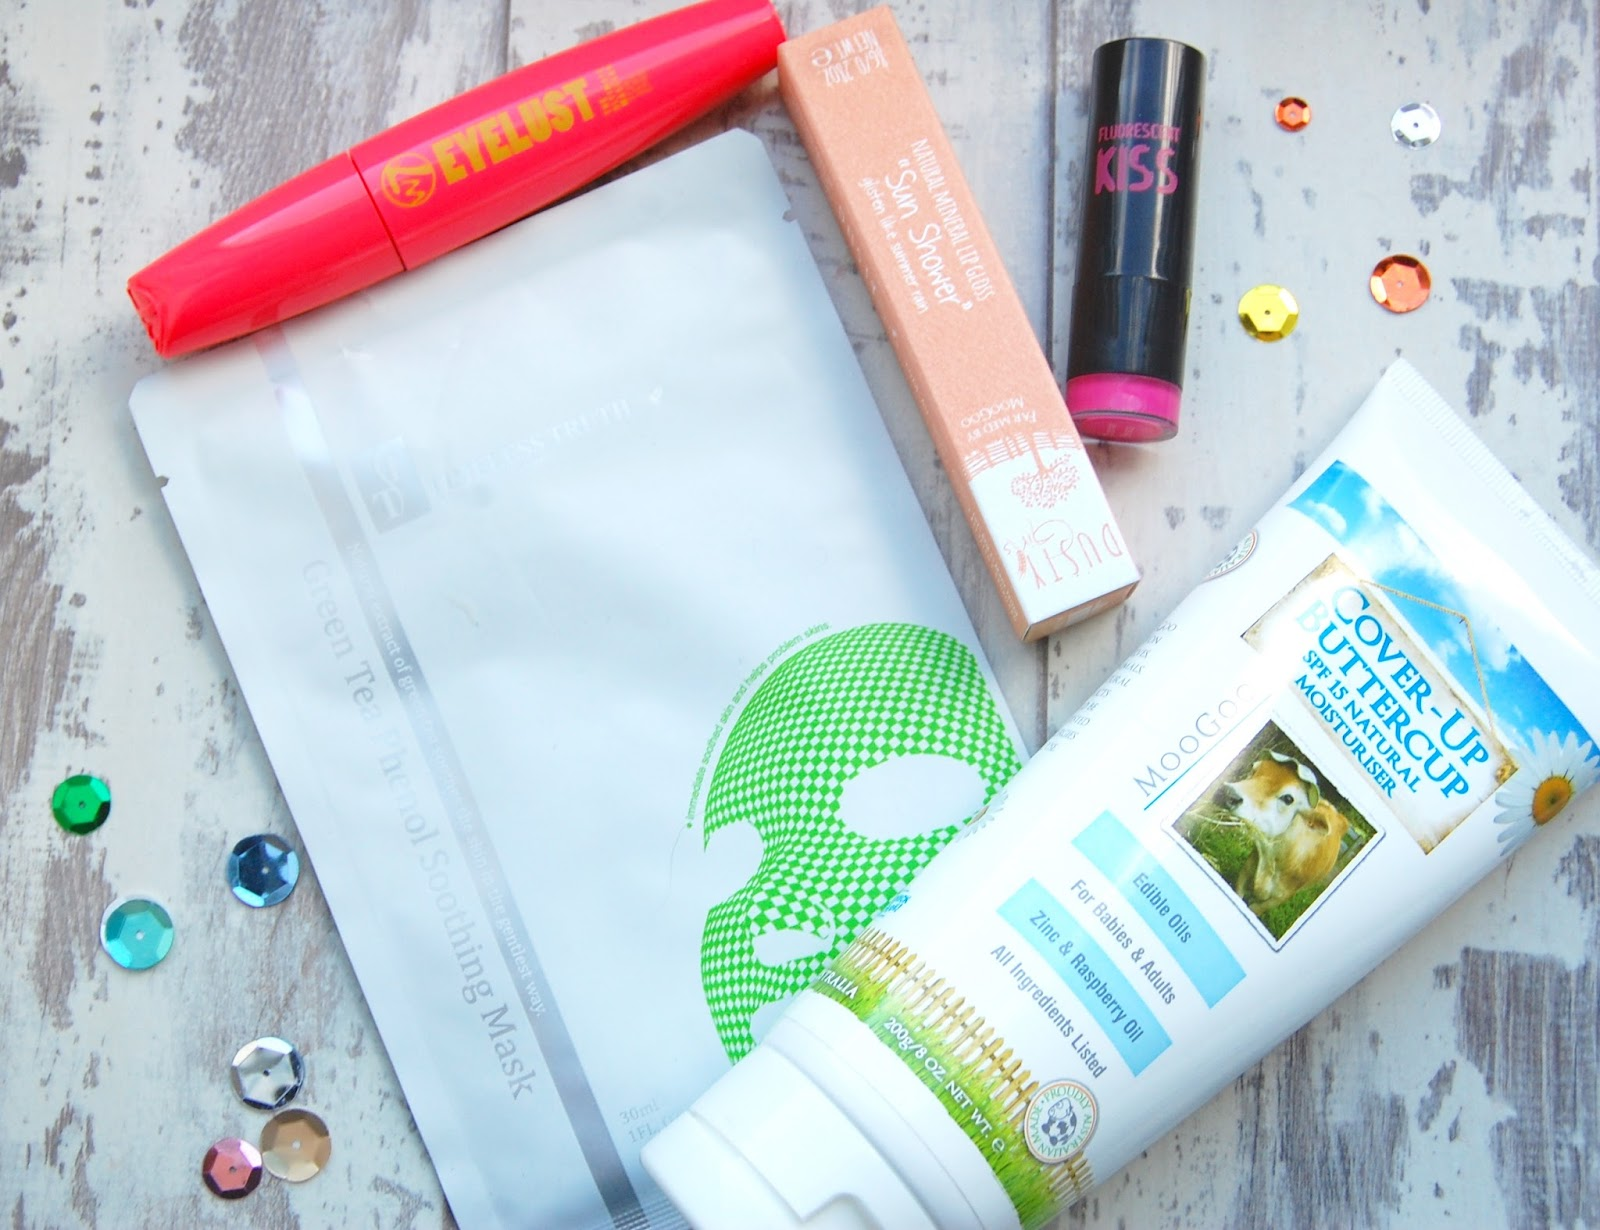 Blogger Beauty Box contents